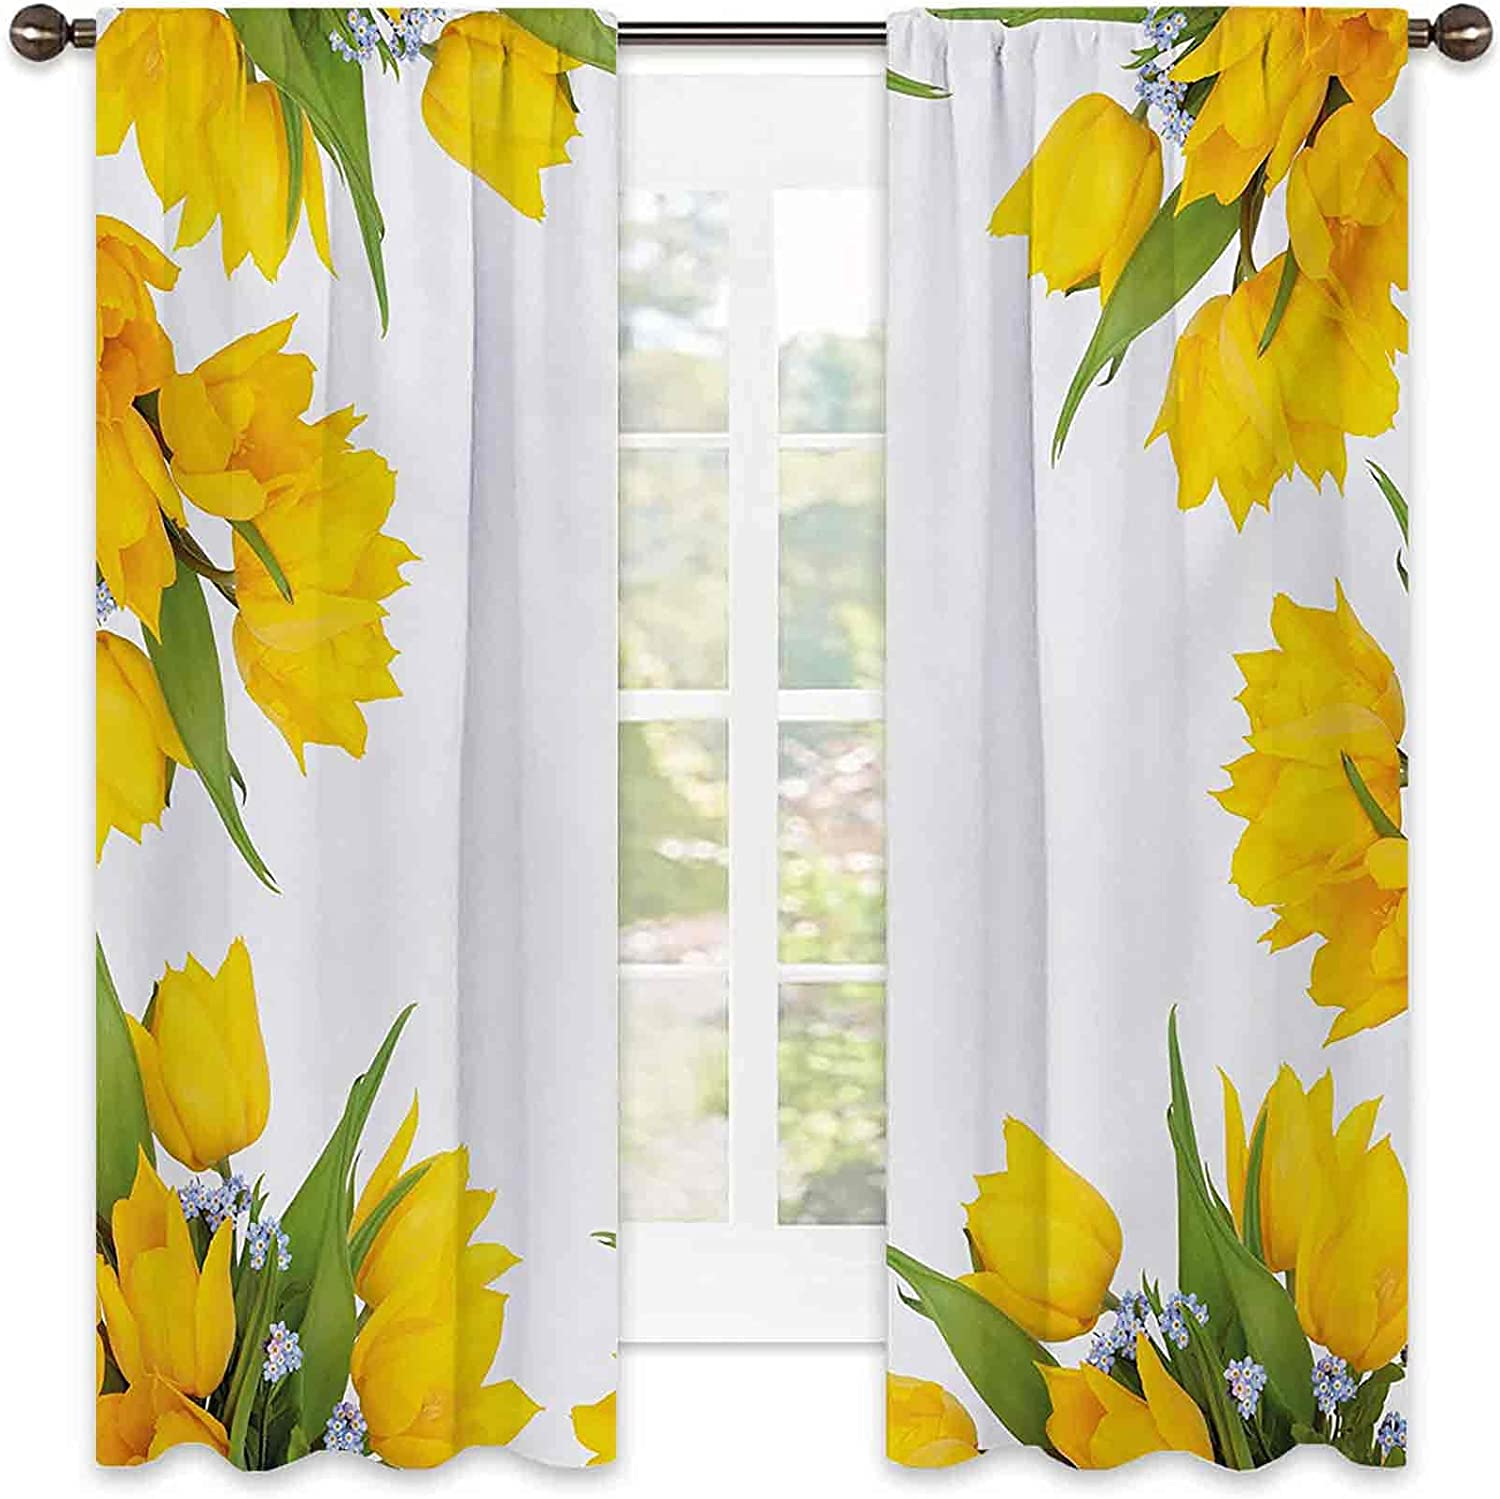 Our shop OFFers the best service Yellow Flower Max 54% OFF 90% Blackout Curtains Abstract Frame Tulip